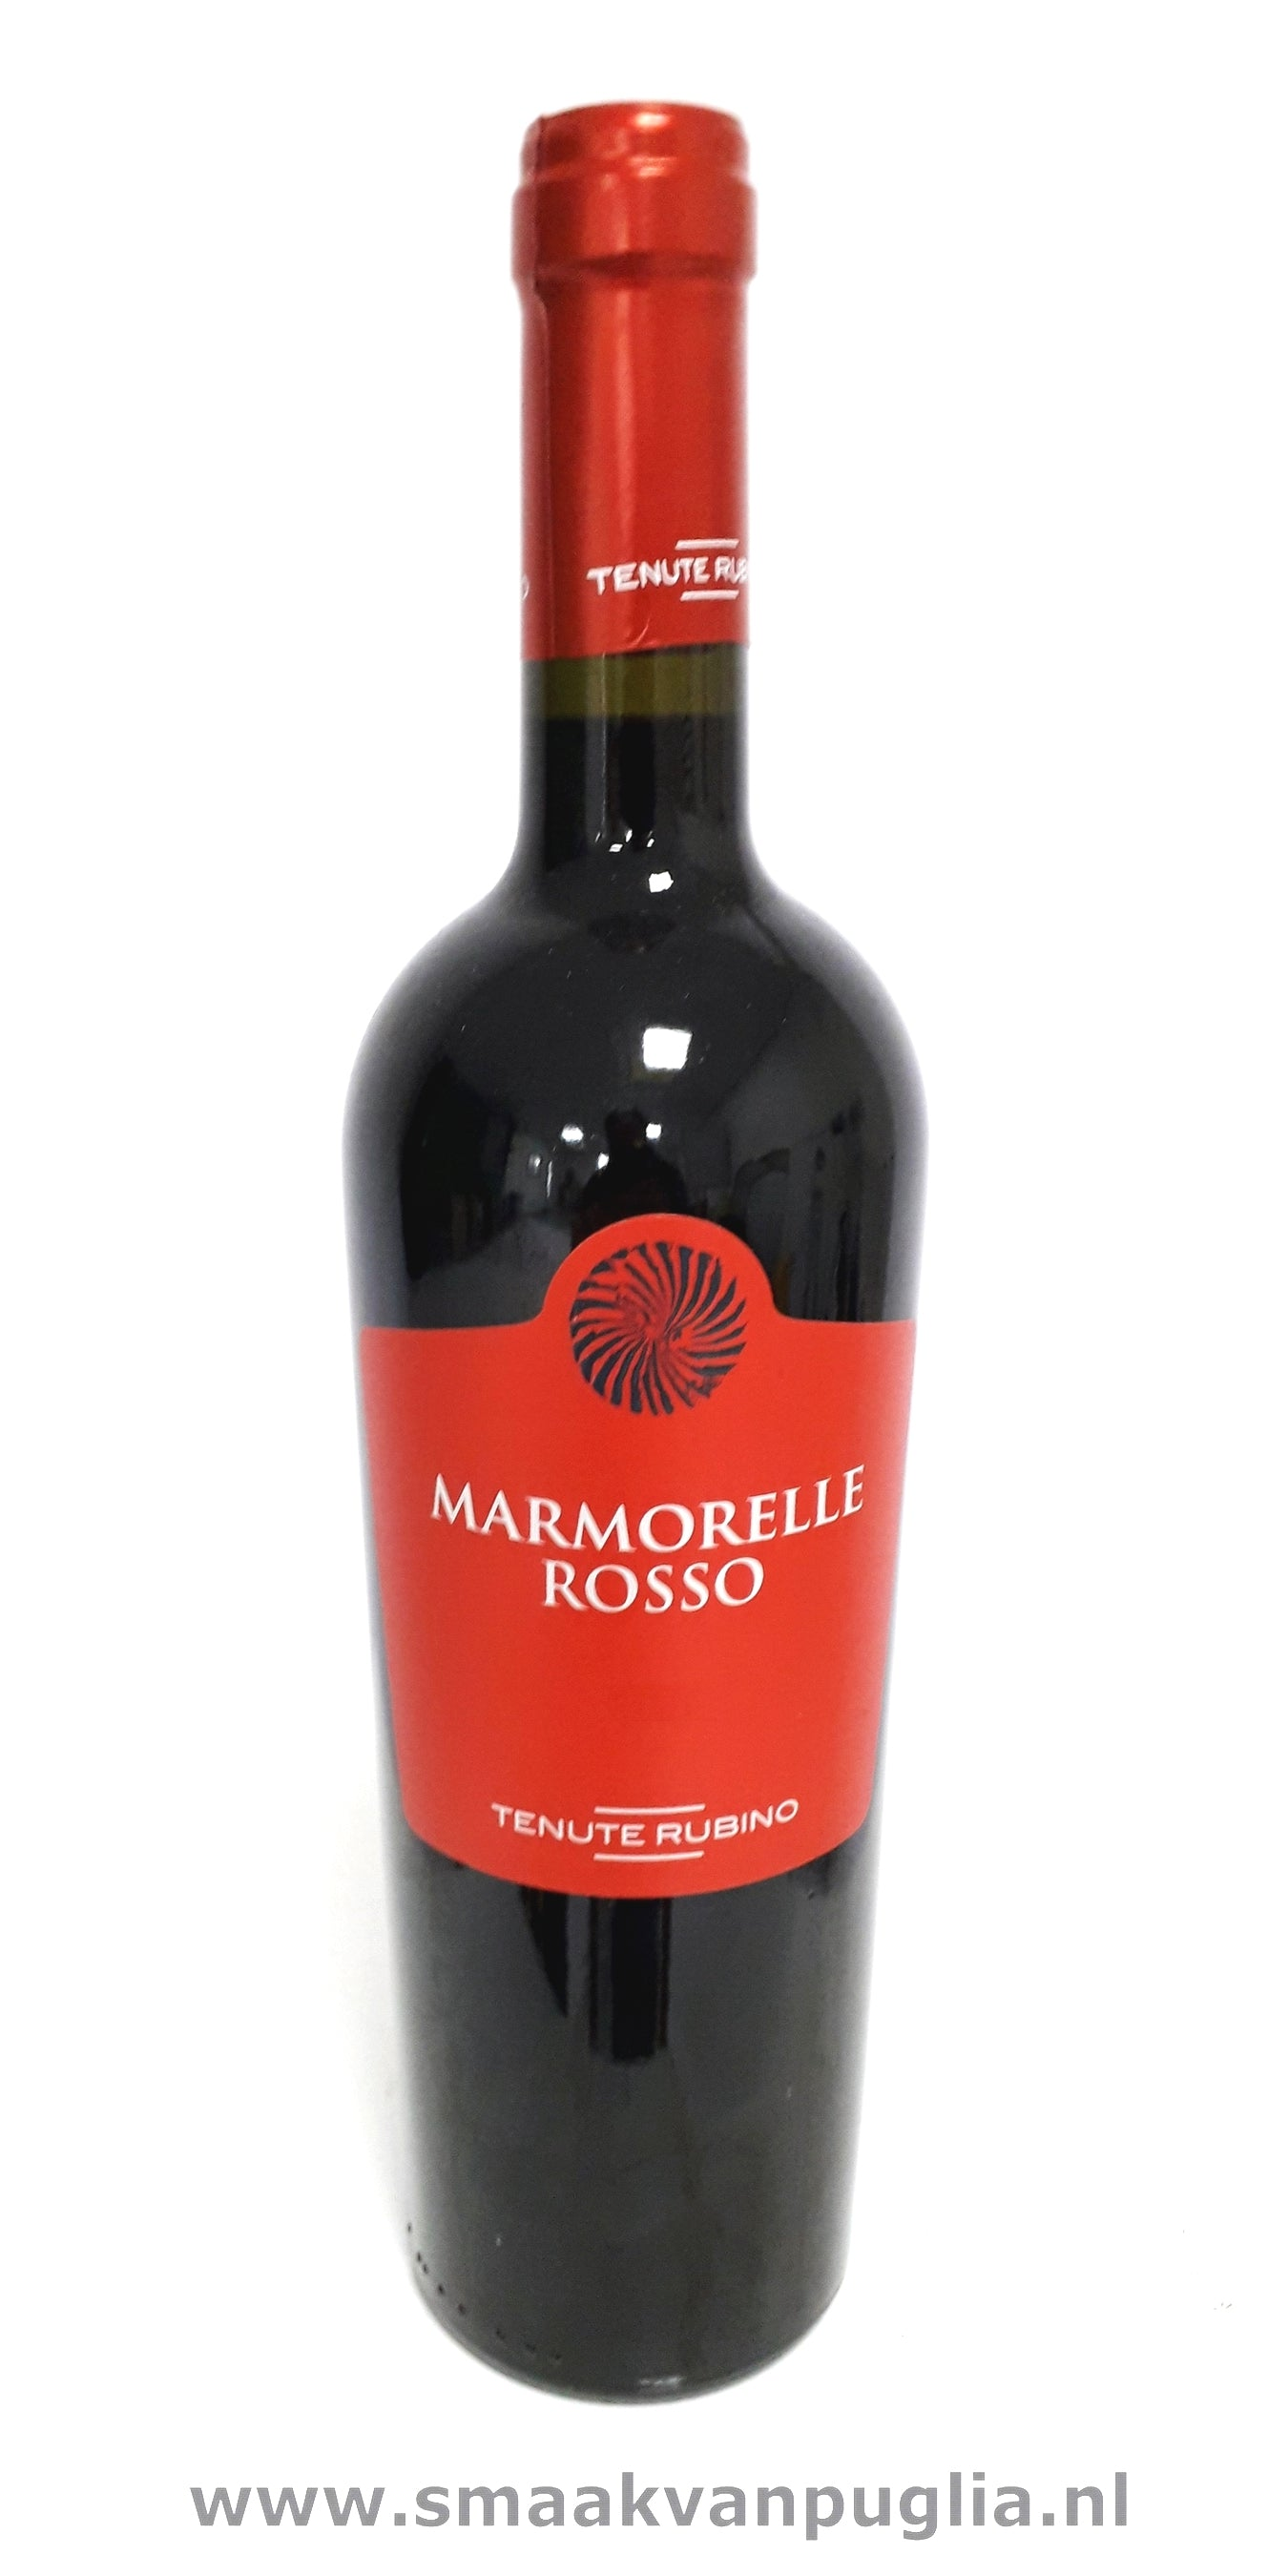 MARMORELLE ROSSO rood